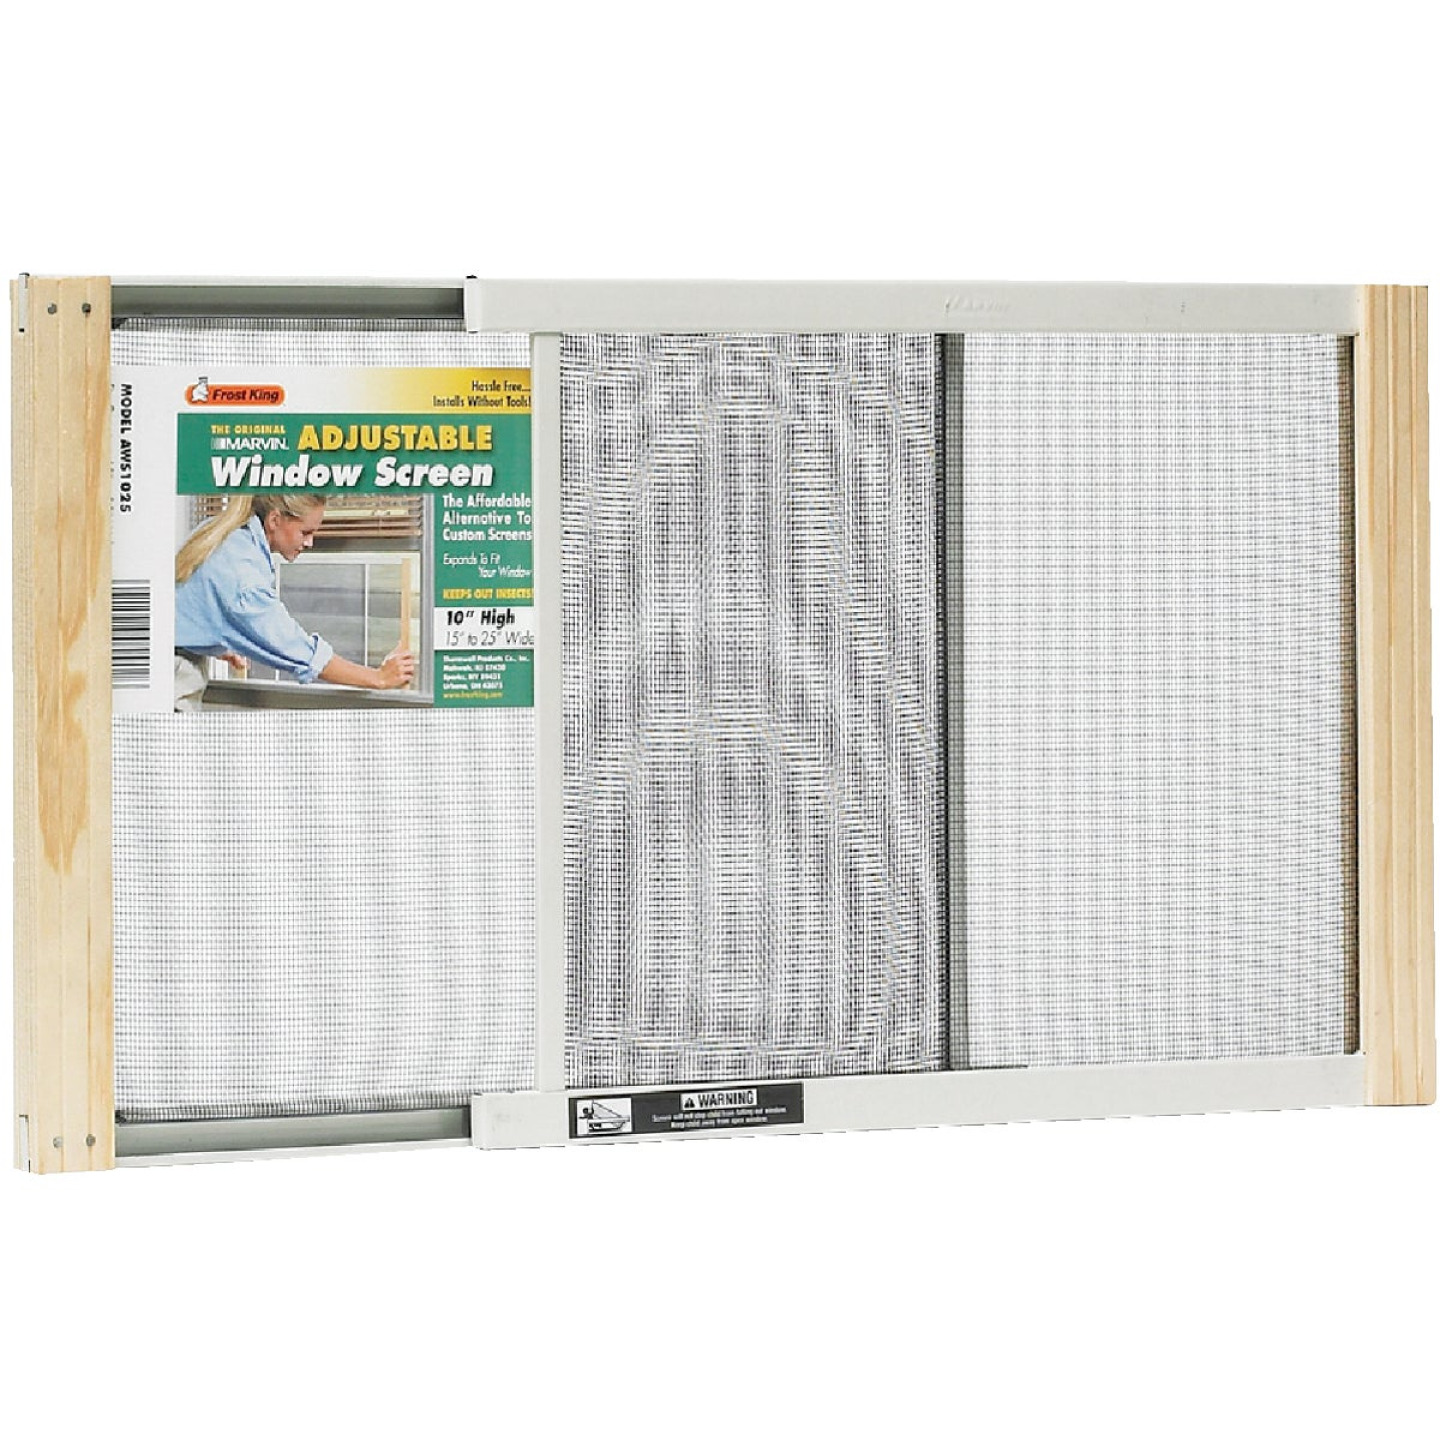 W.B. Marvin 10 In. x 15-25 In. Adjustable Window Screens by Frost King Image 1